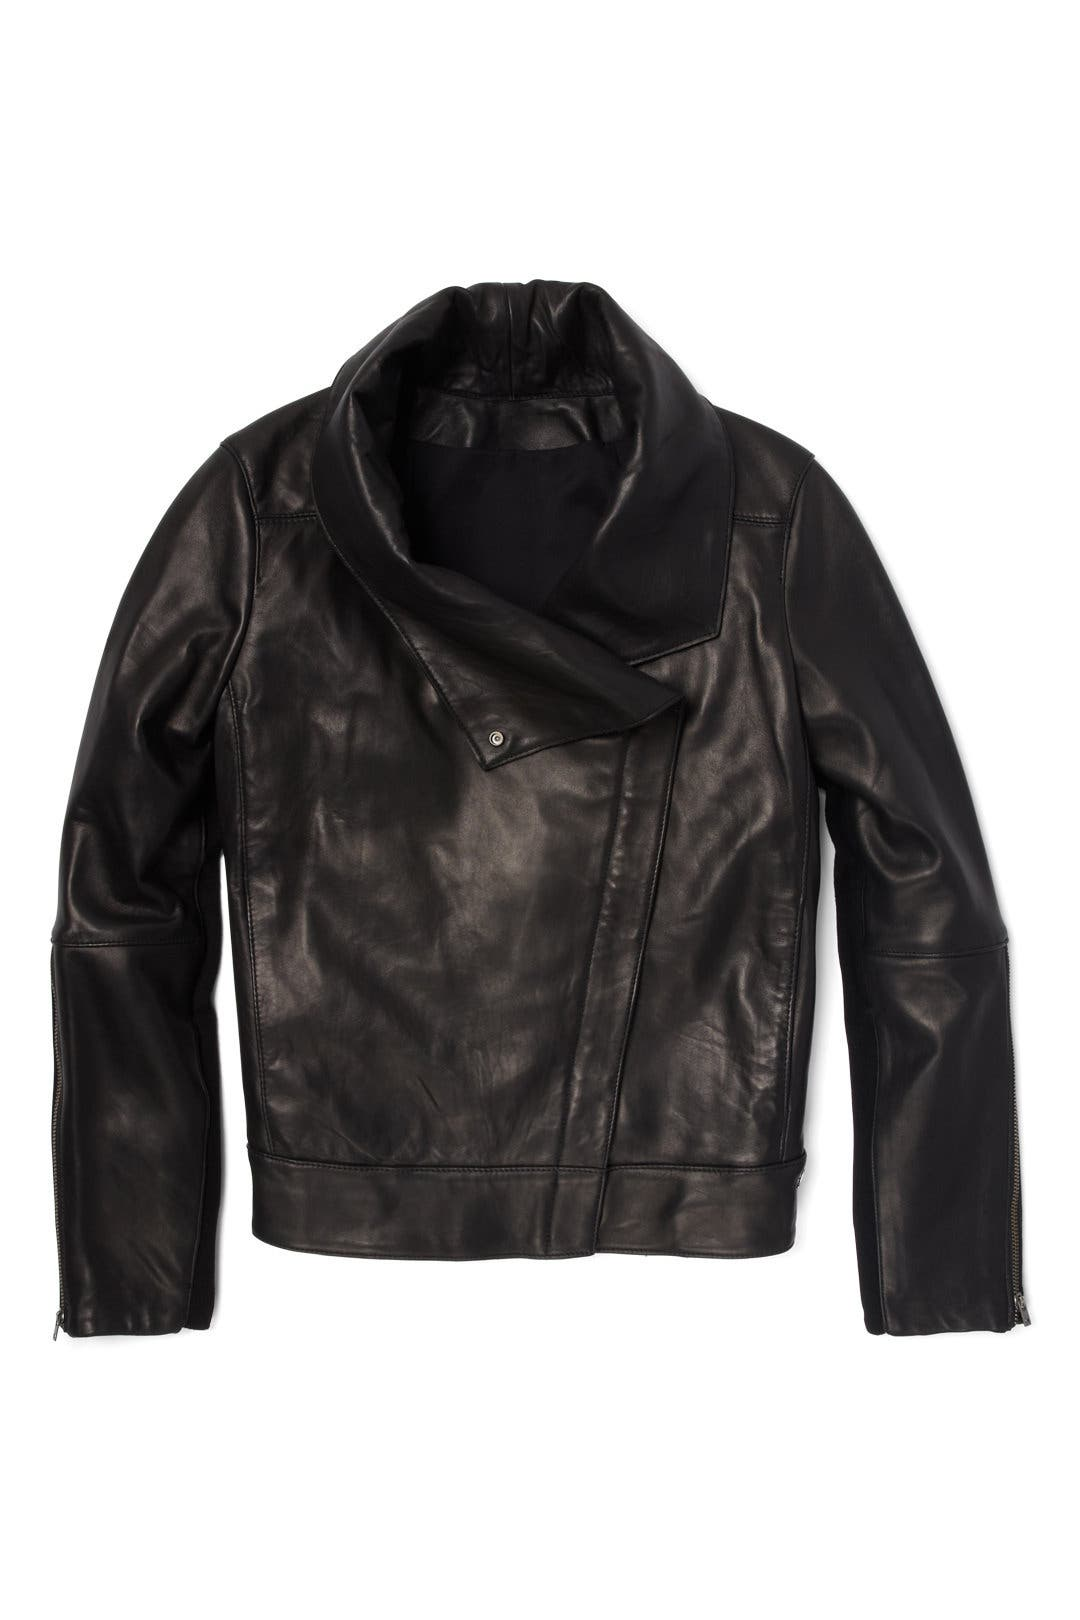 e163891e6 Helmut Lang Black Petal High Collar Jacket